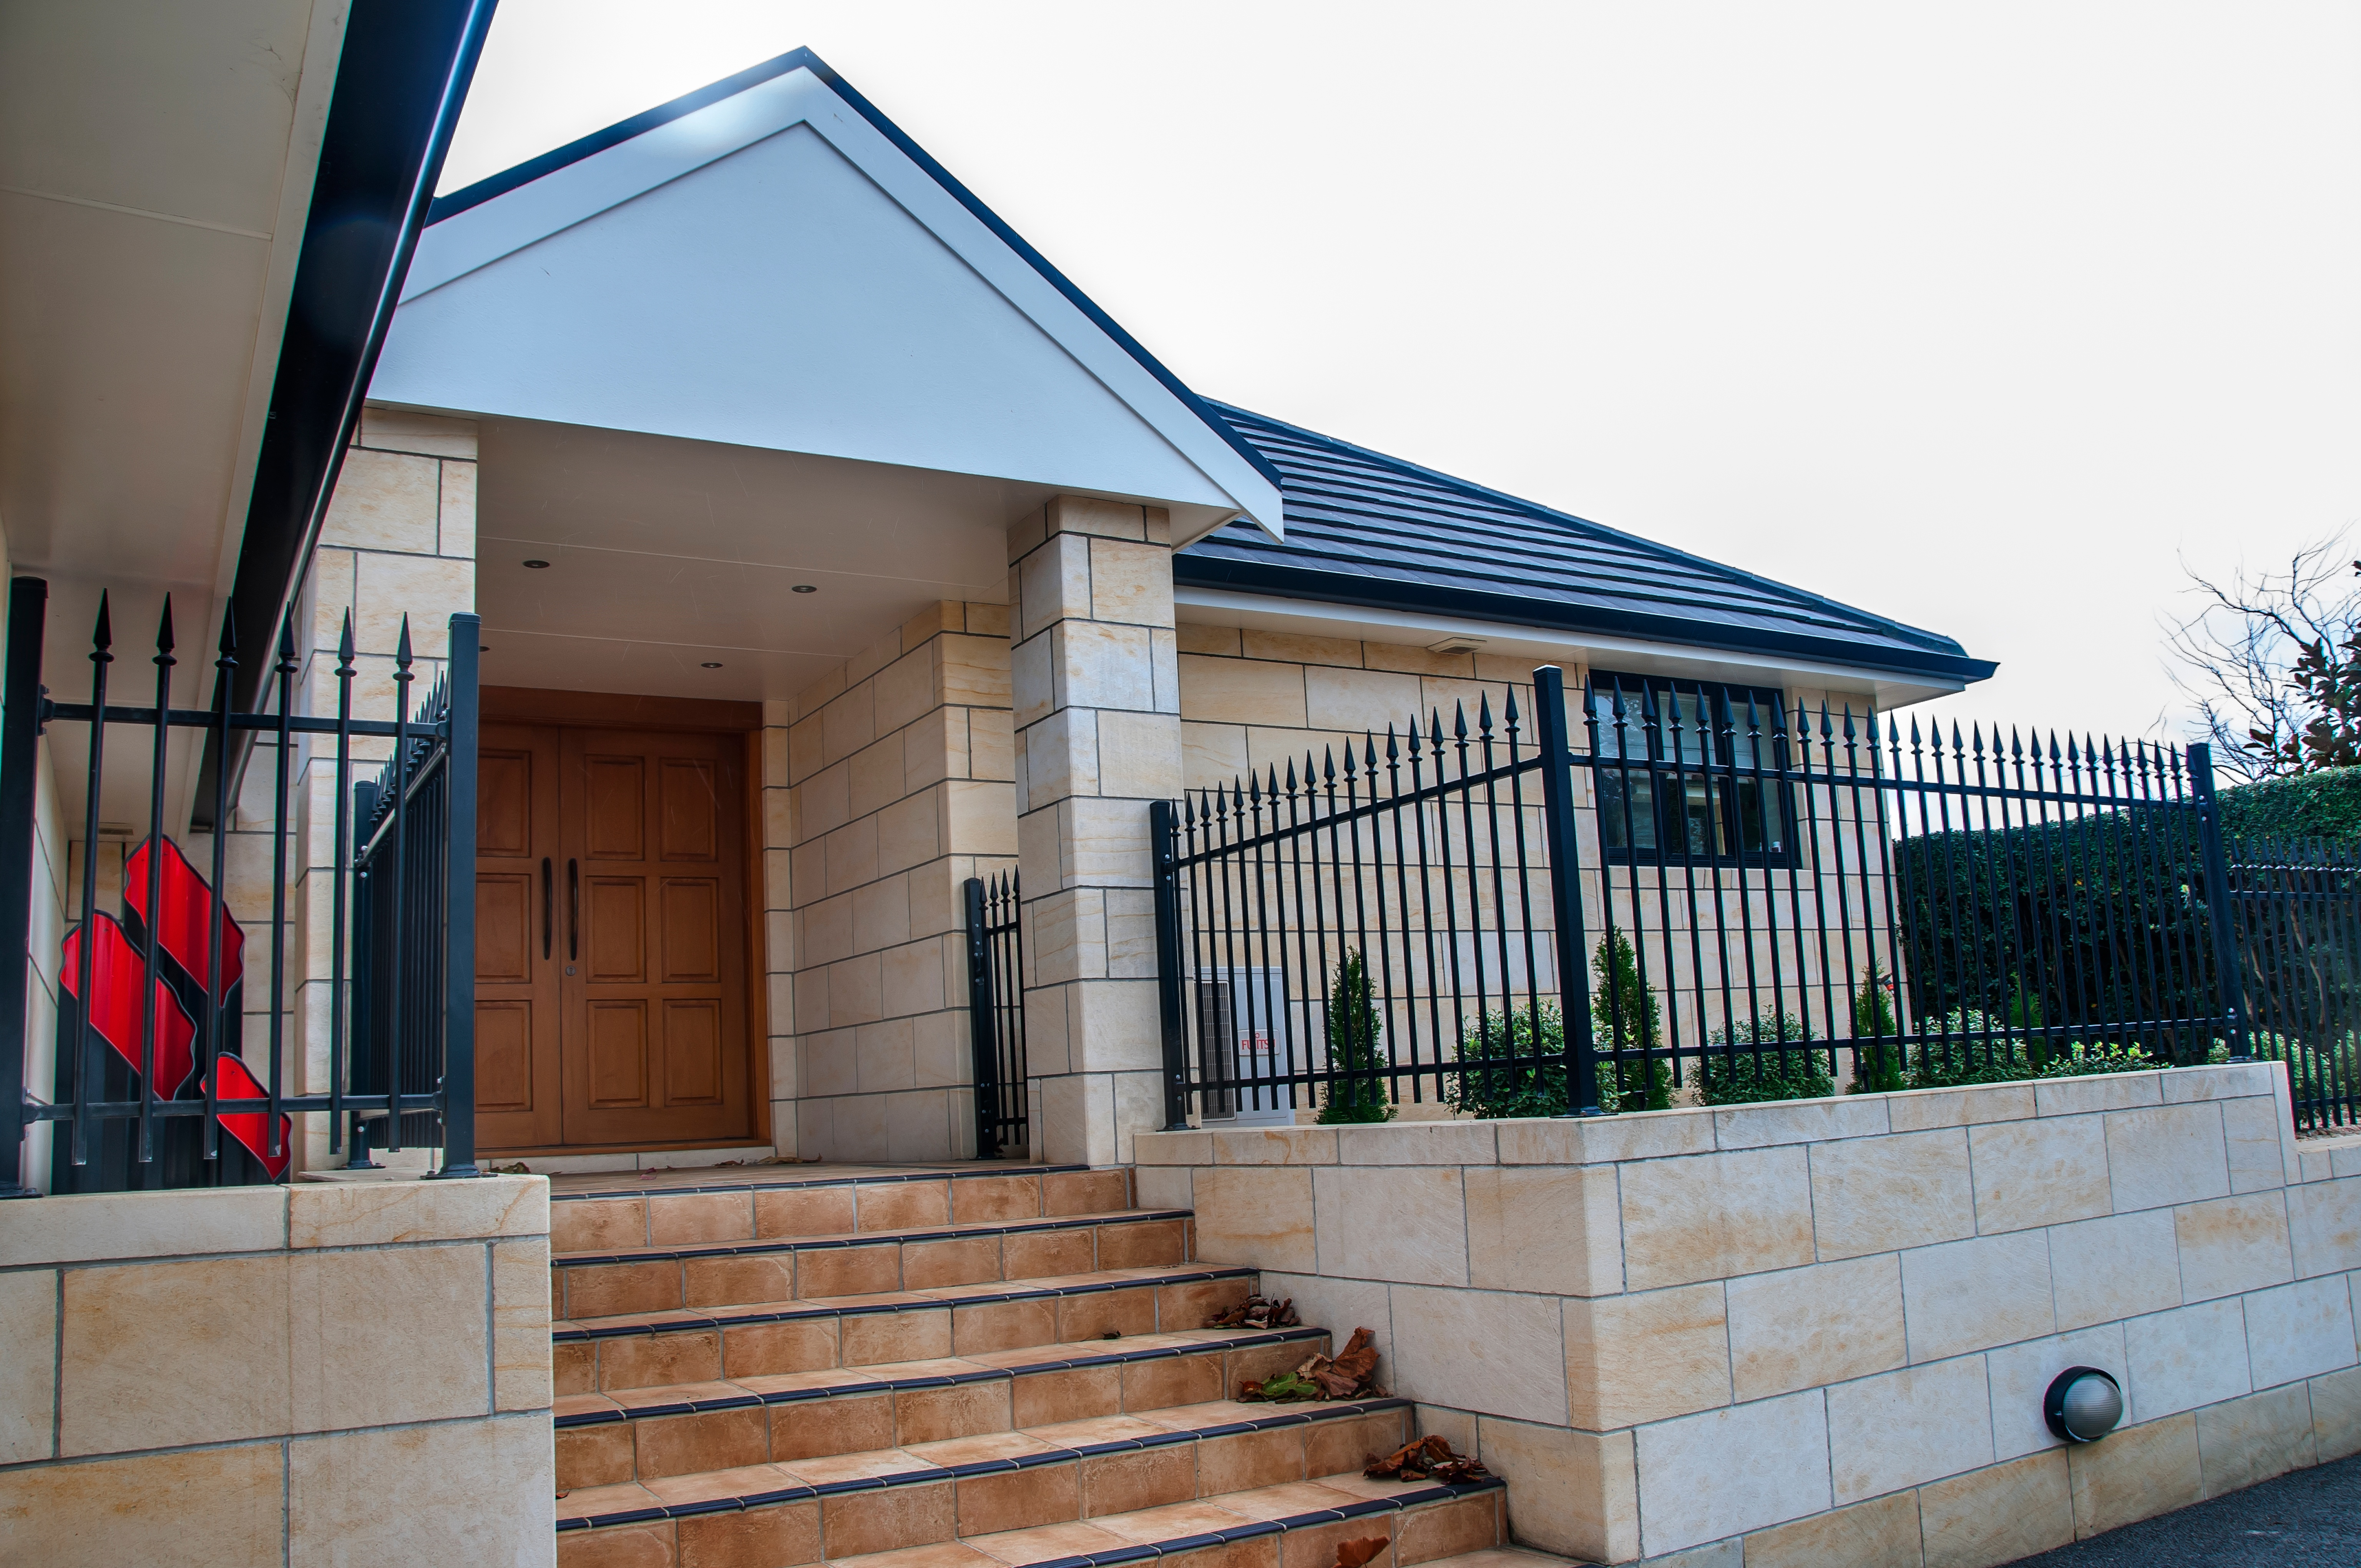 Parkwood doors knowledge centre which front door is best for your sydney home rubansaba